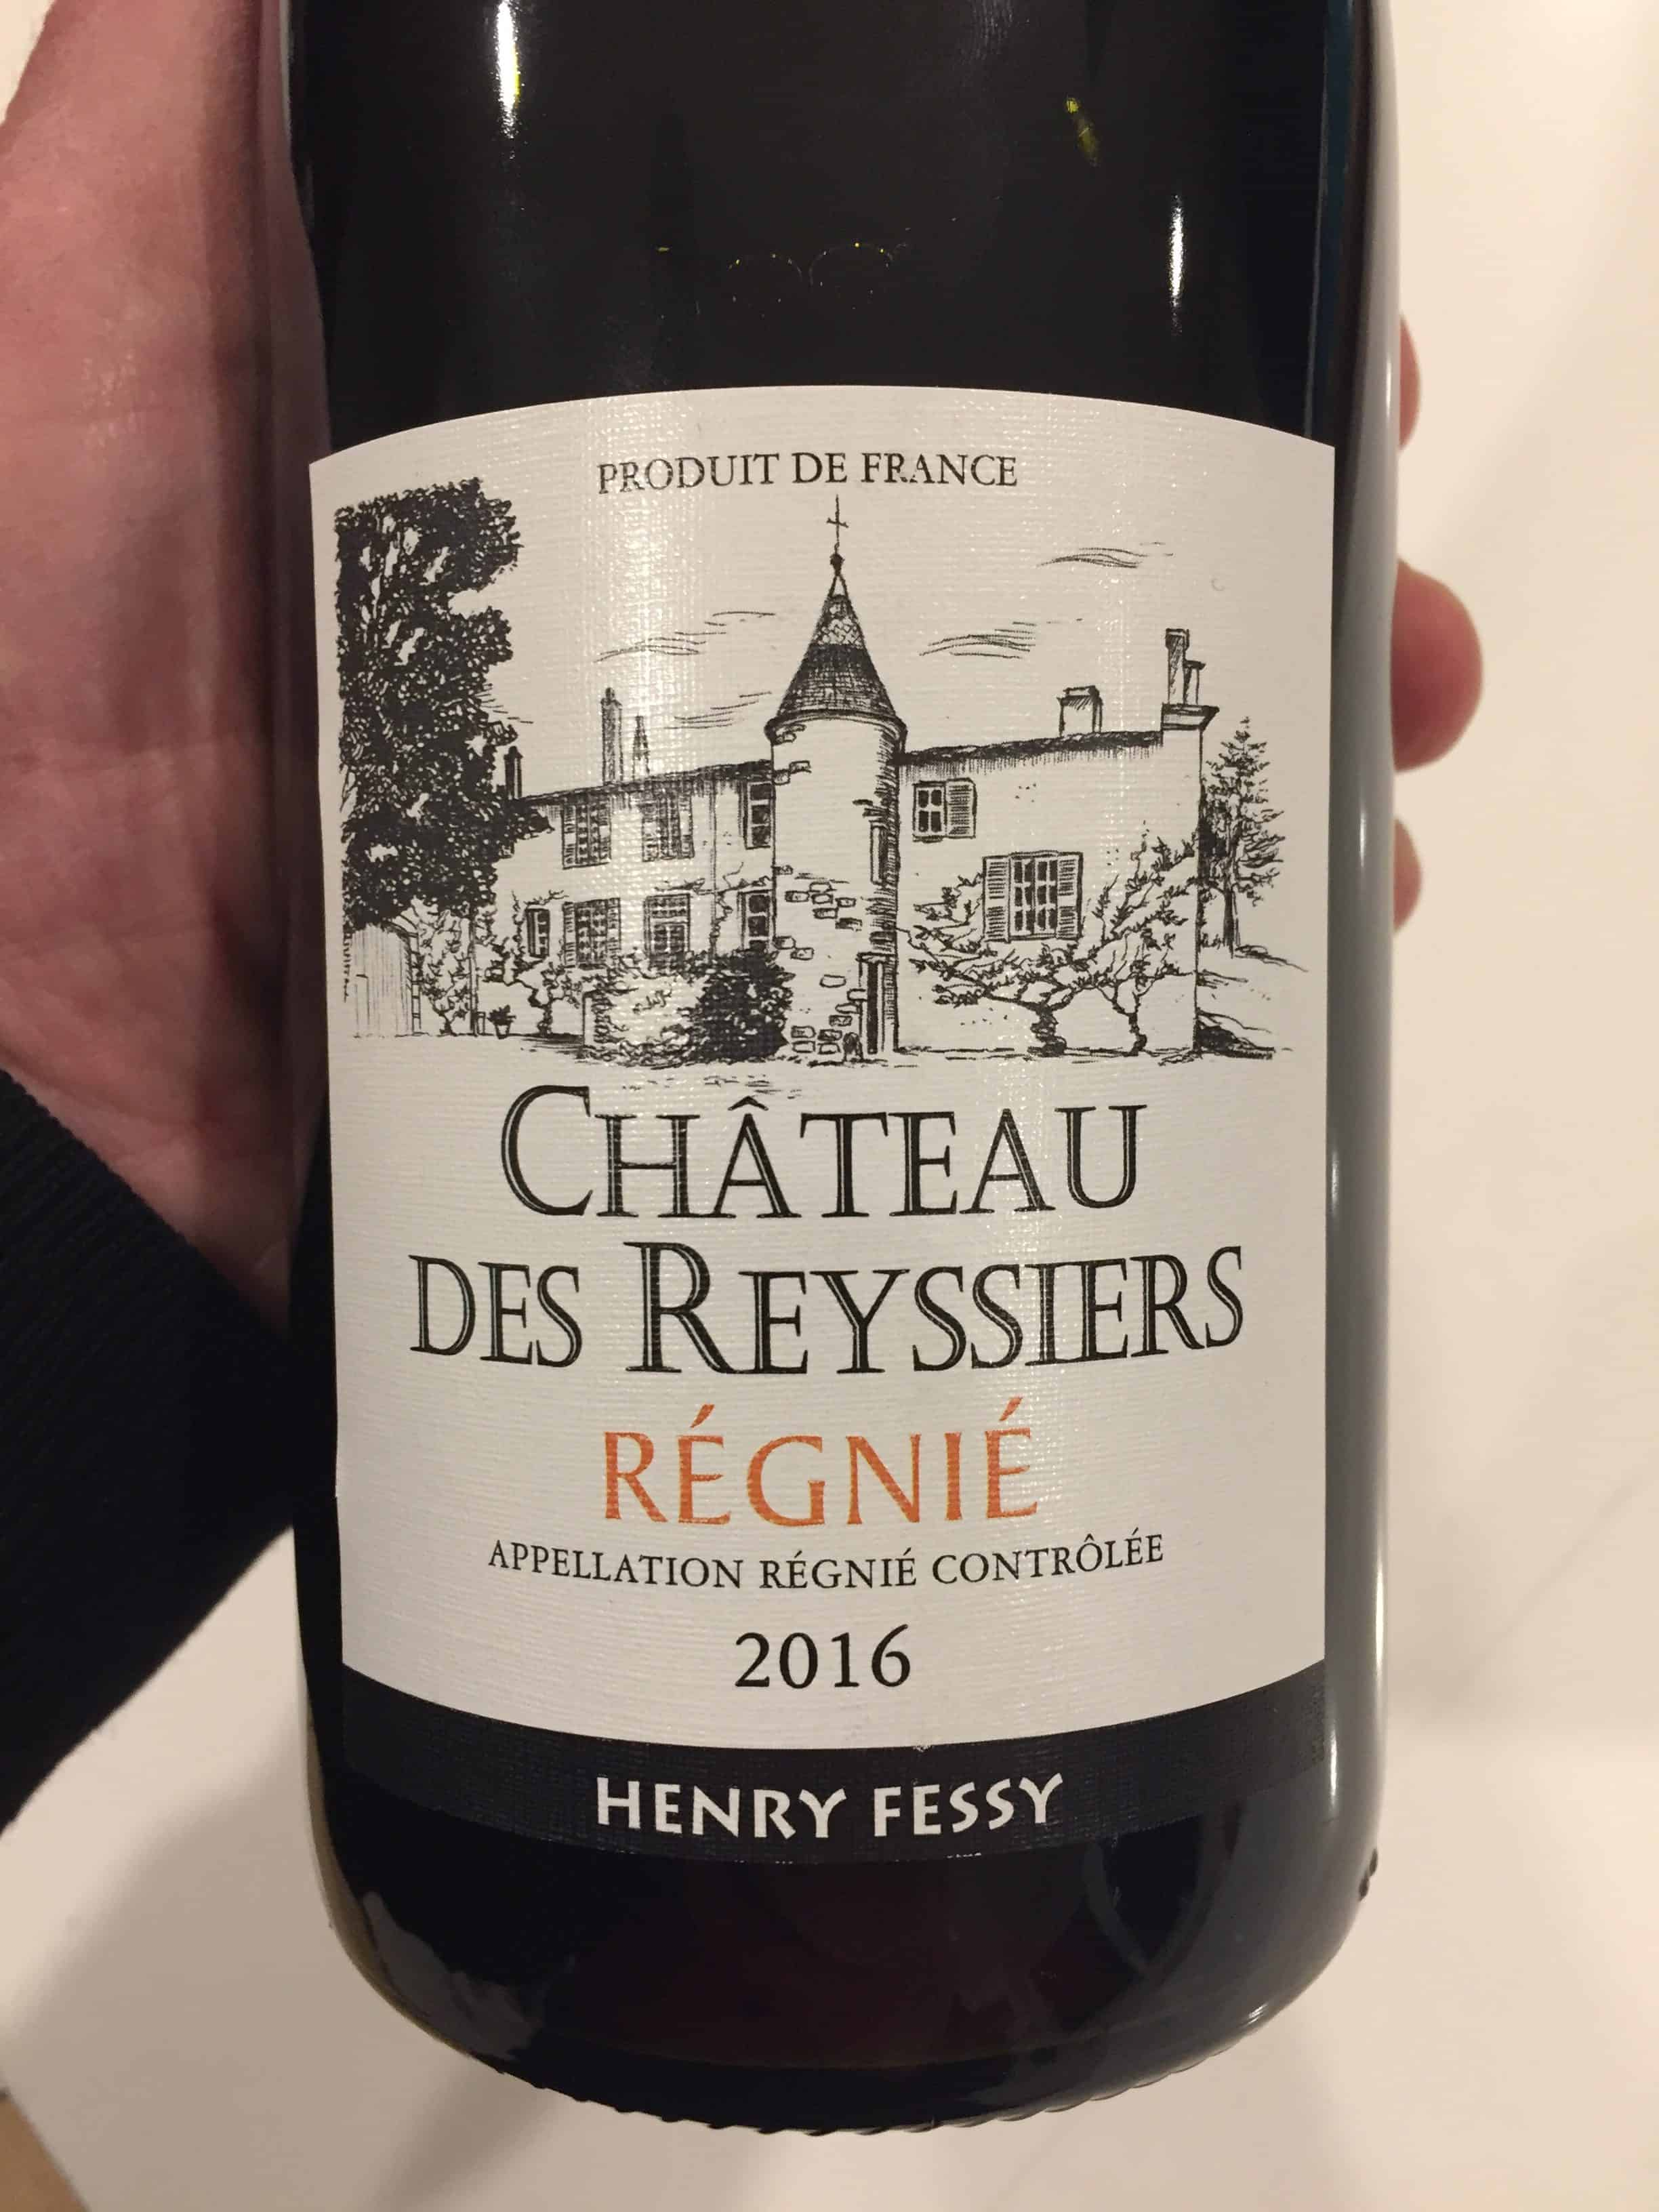 Bottle of Chateau Des Reyssiers 2016